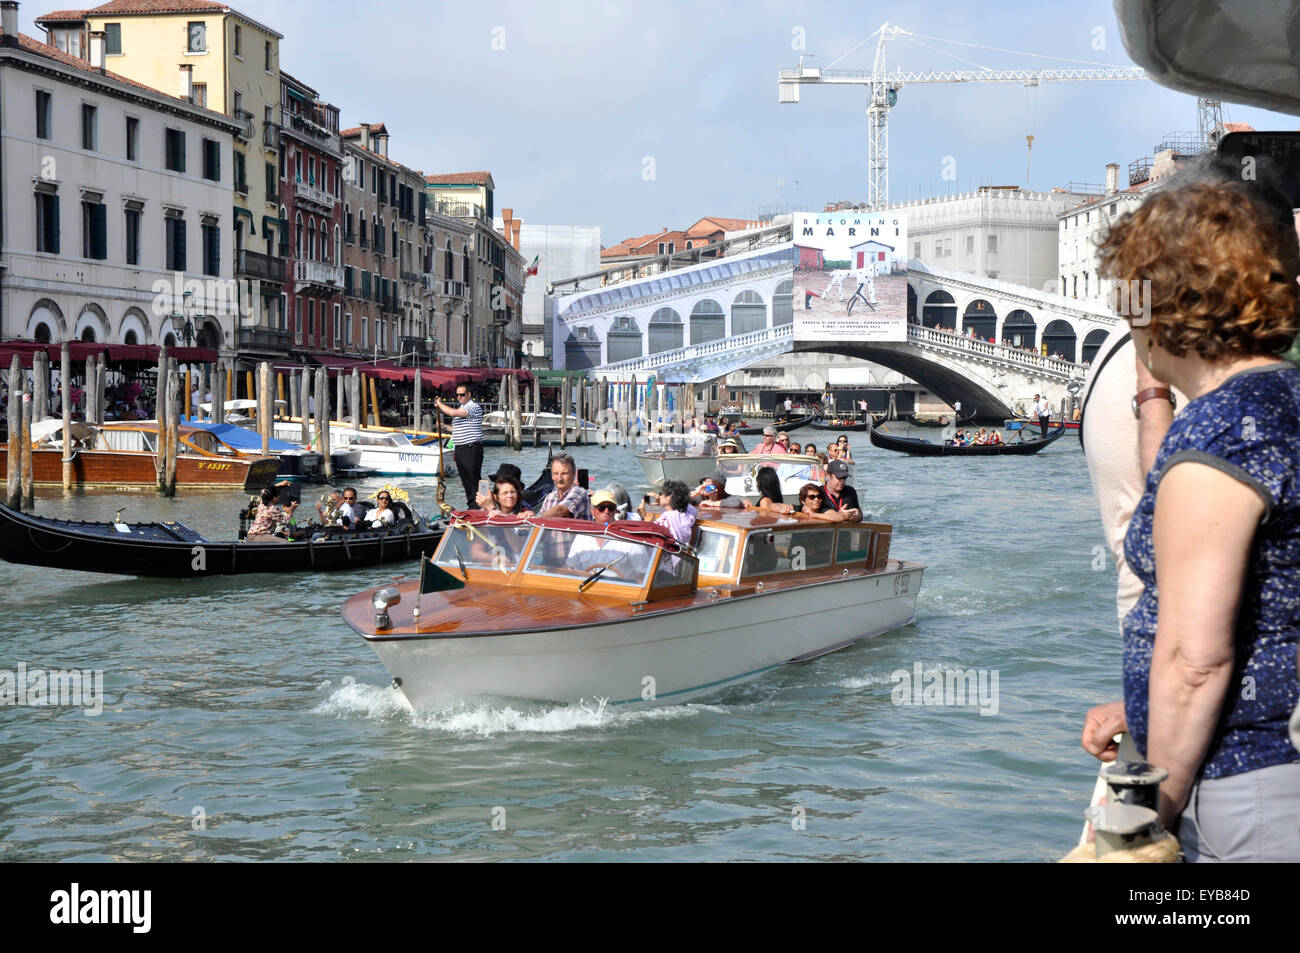 Italy -Venice - Canale Grande - gondolas water taxis busy scene backdrop Rialto bridge sunlight blue sky - Stock Image